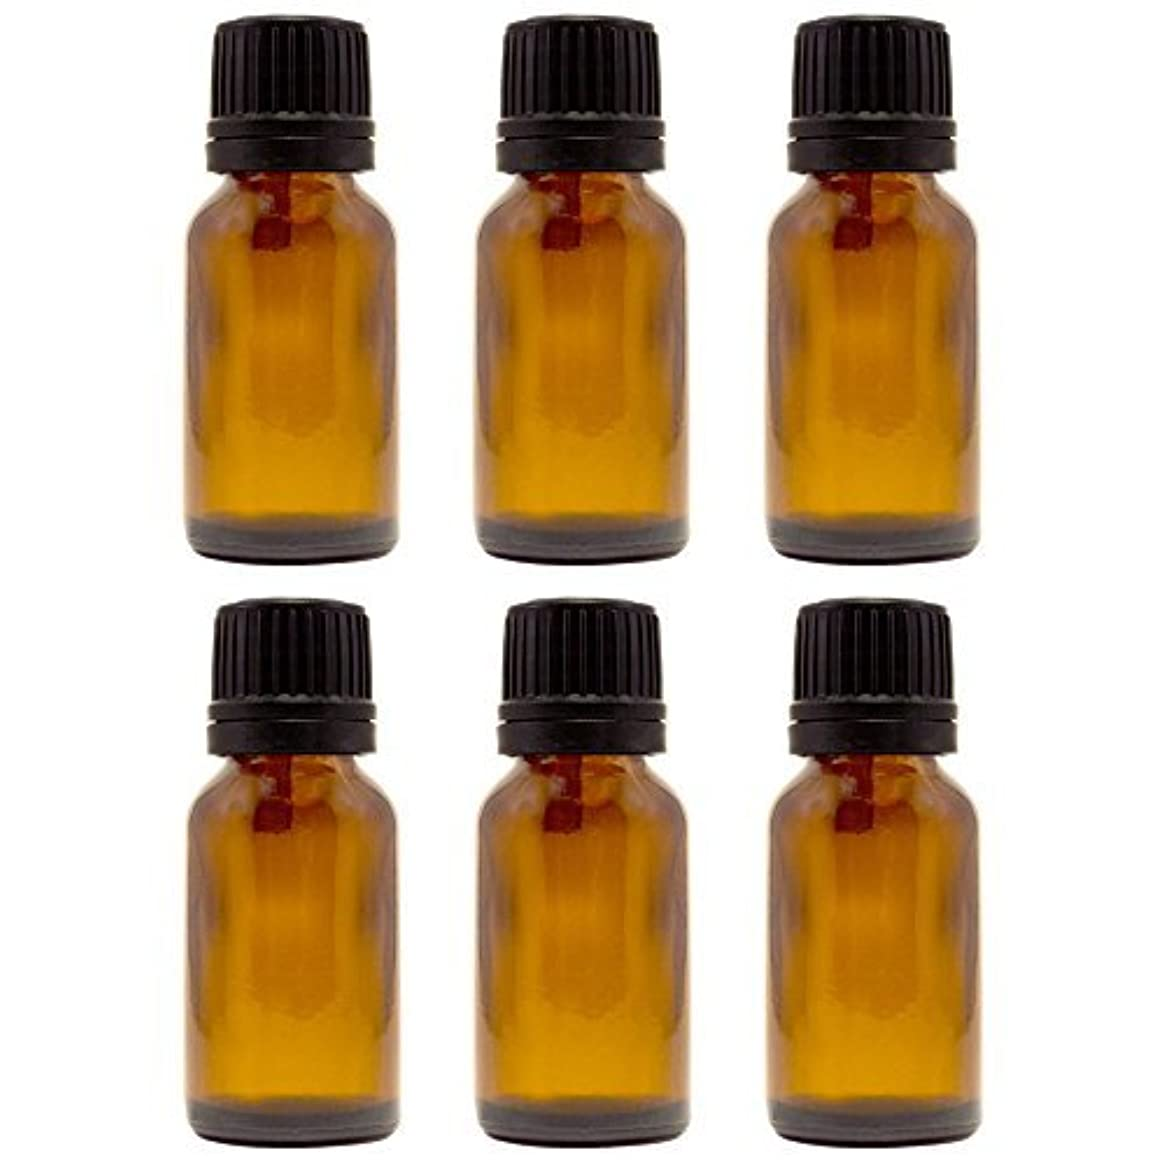 教育する荒涼としたそれ15 ml (1/2 fl oz) Amber Glass Bottle with Euro Dropper (6 Pack) [並行輸入品]